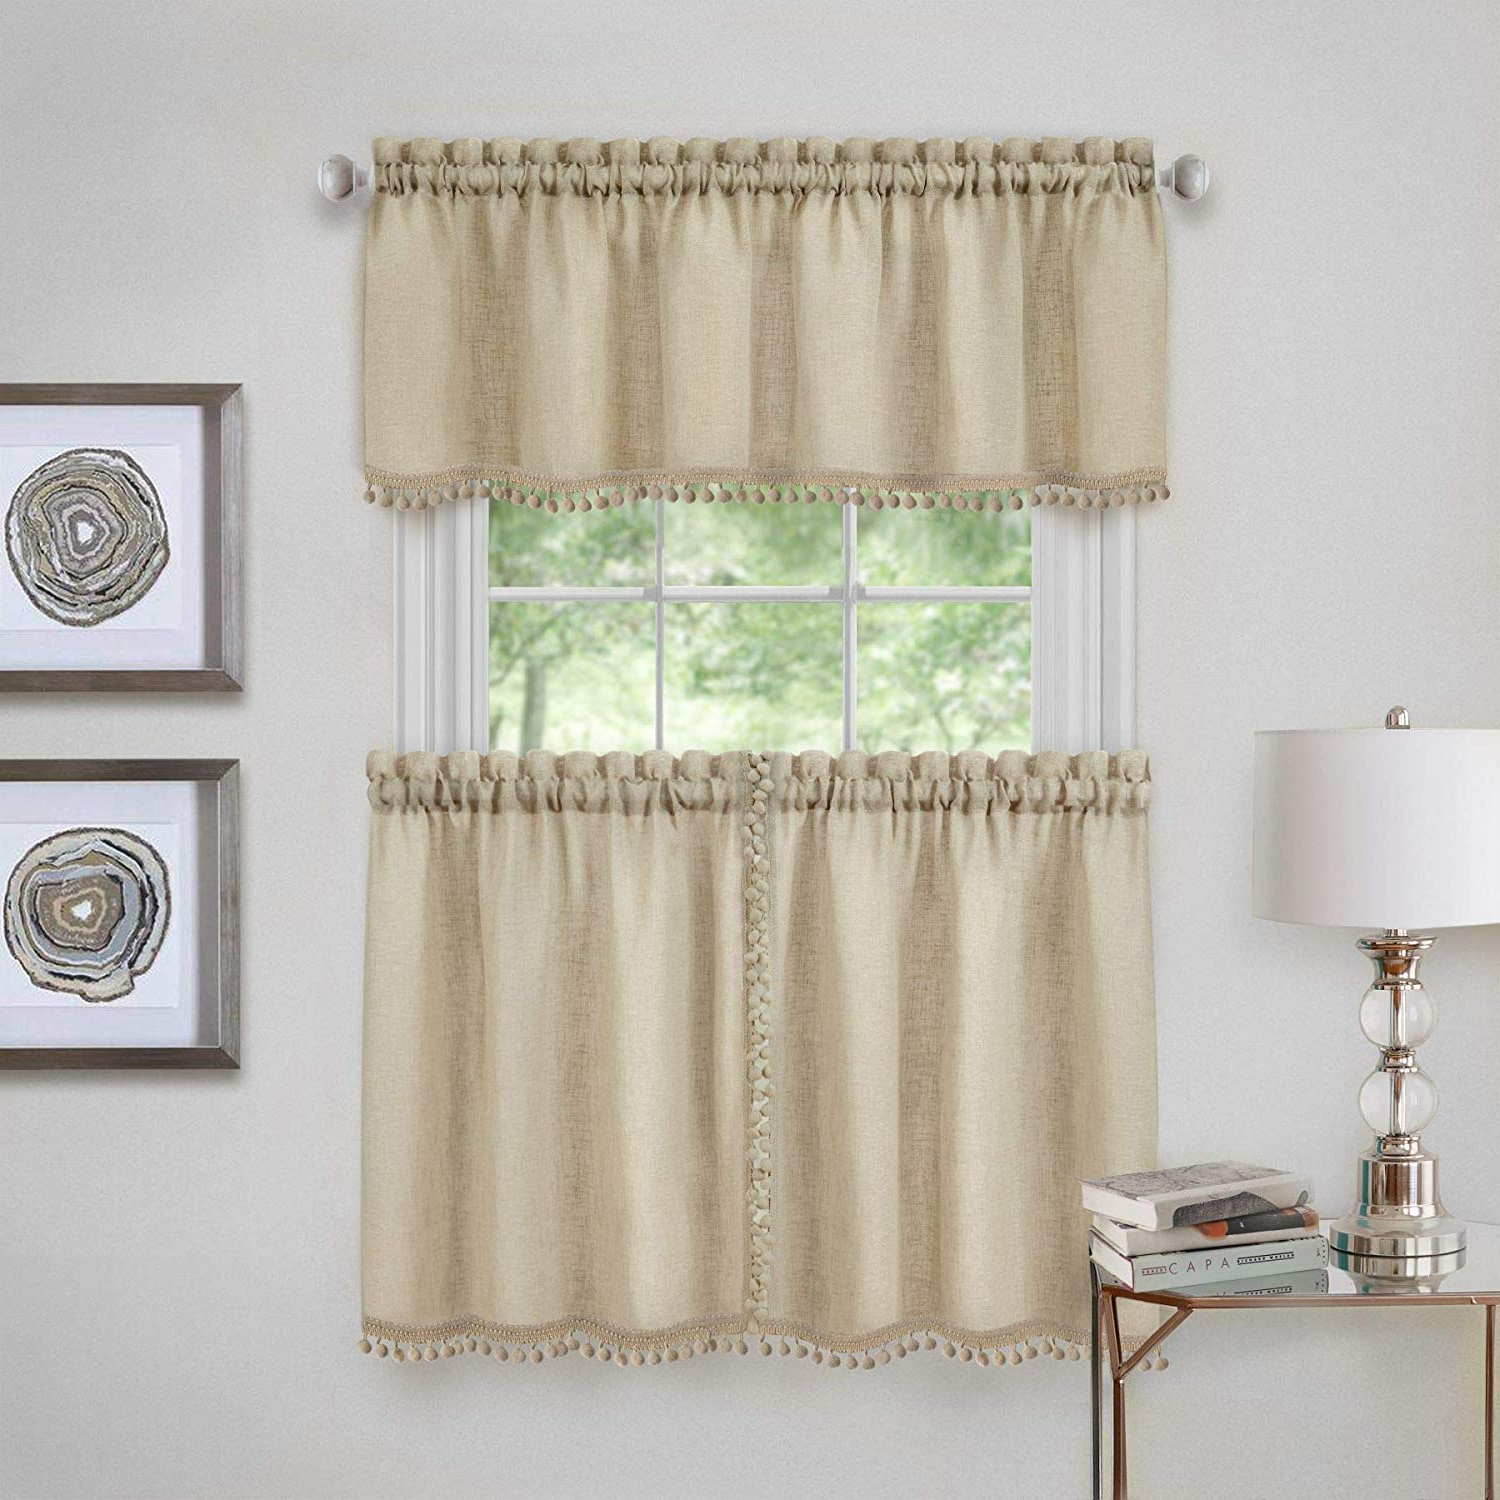 Famous Wallace Window Kitchen Curtain Tiers With Regard To Amazon: Ben & Jonah Primehome Collection Wallace Window (View 3 of 20)